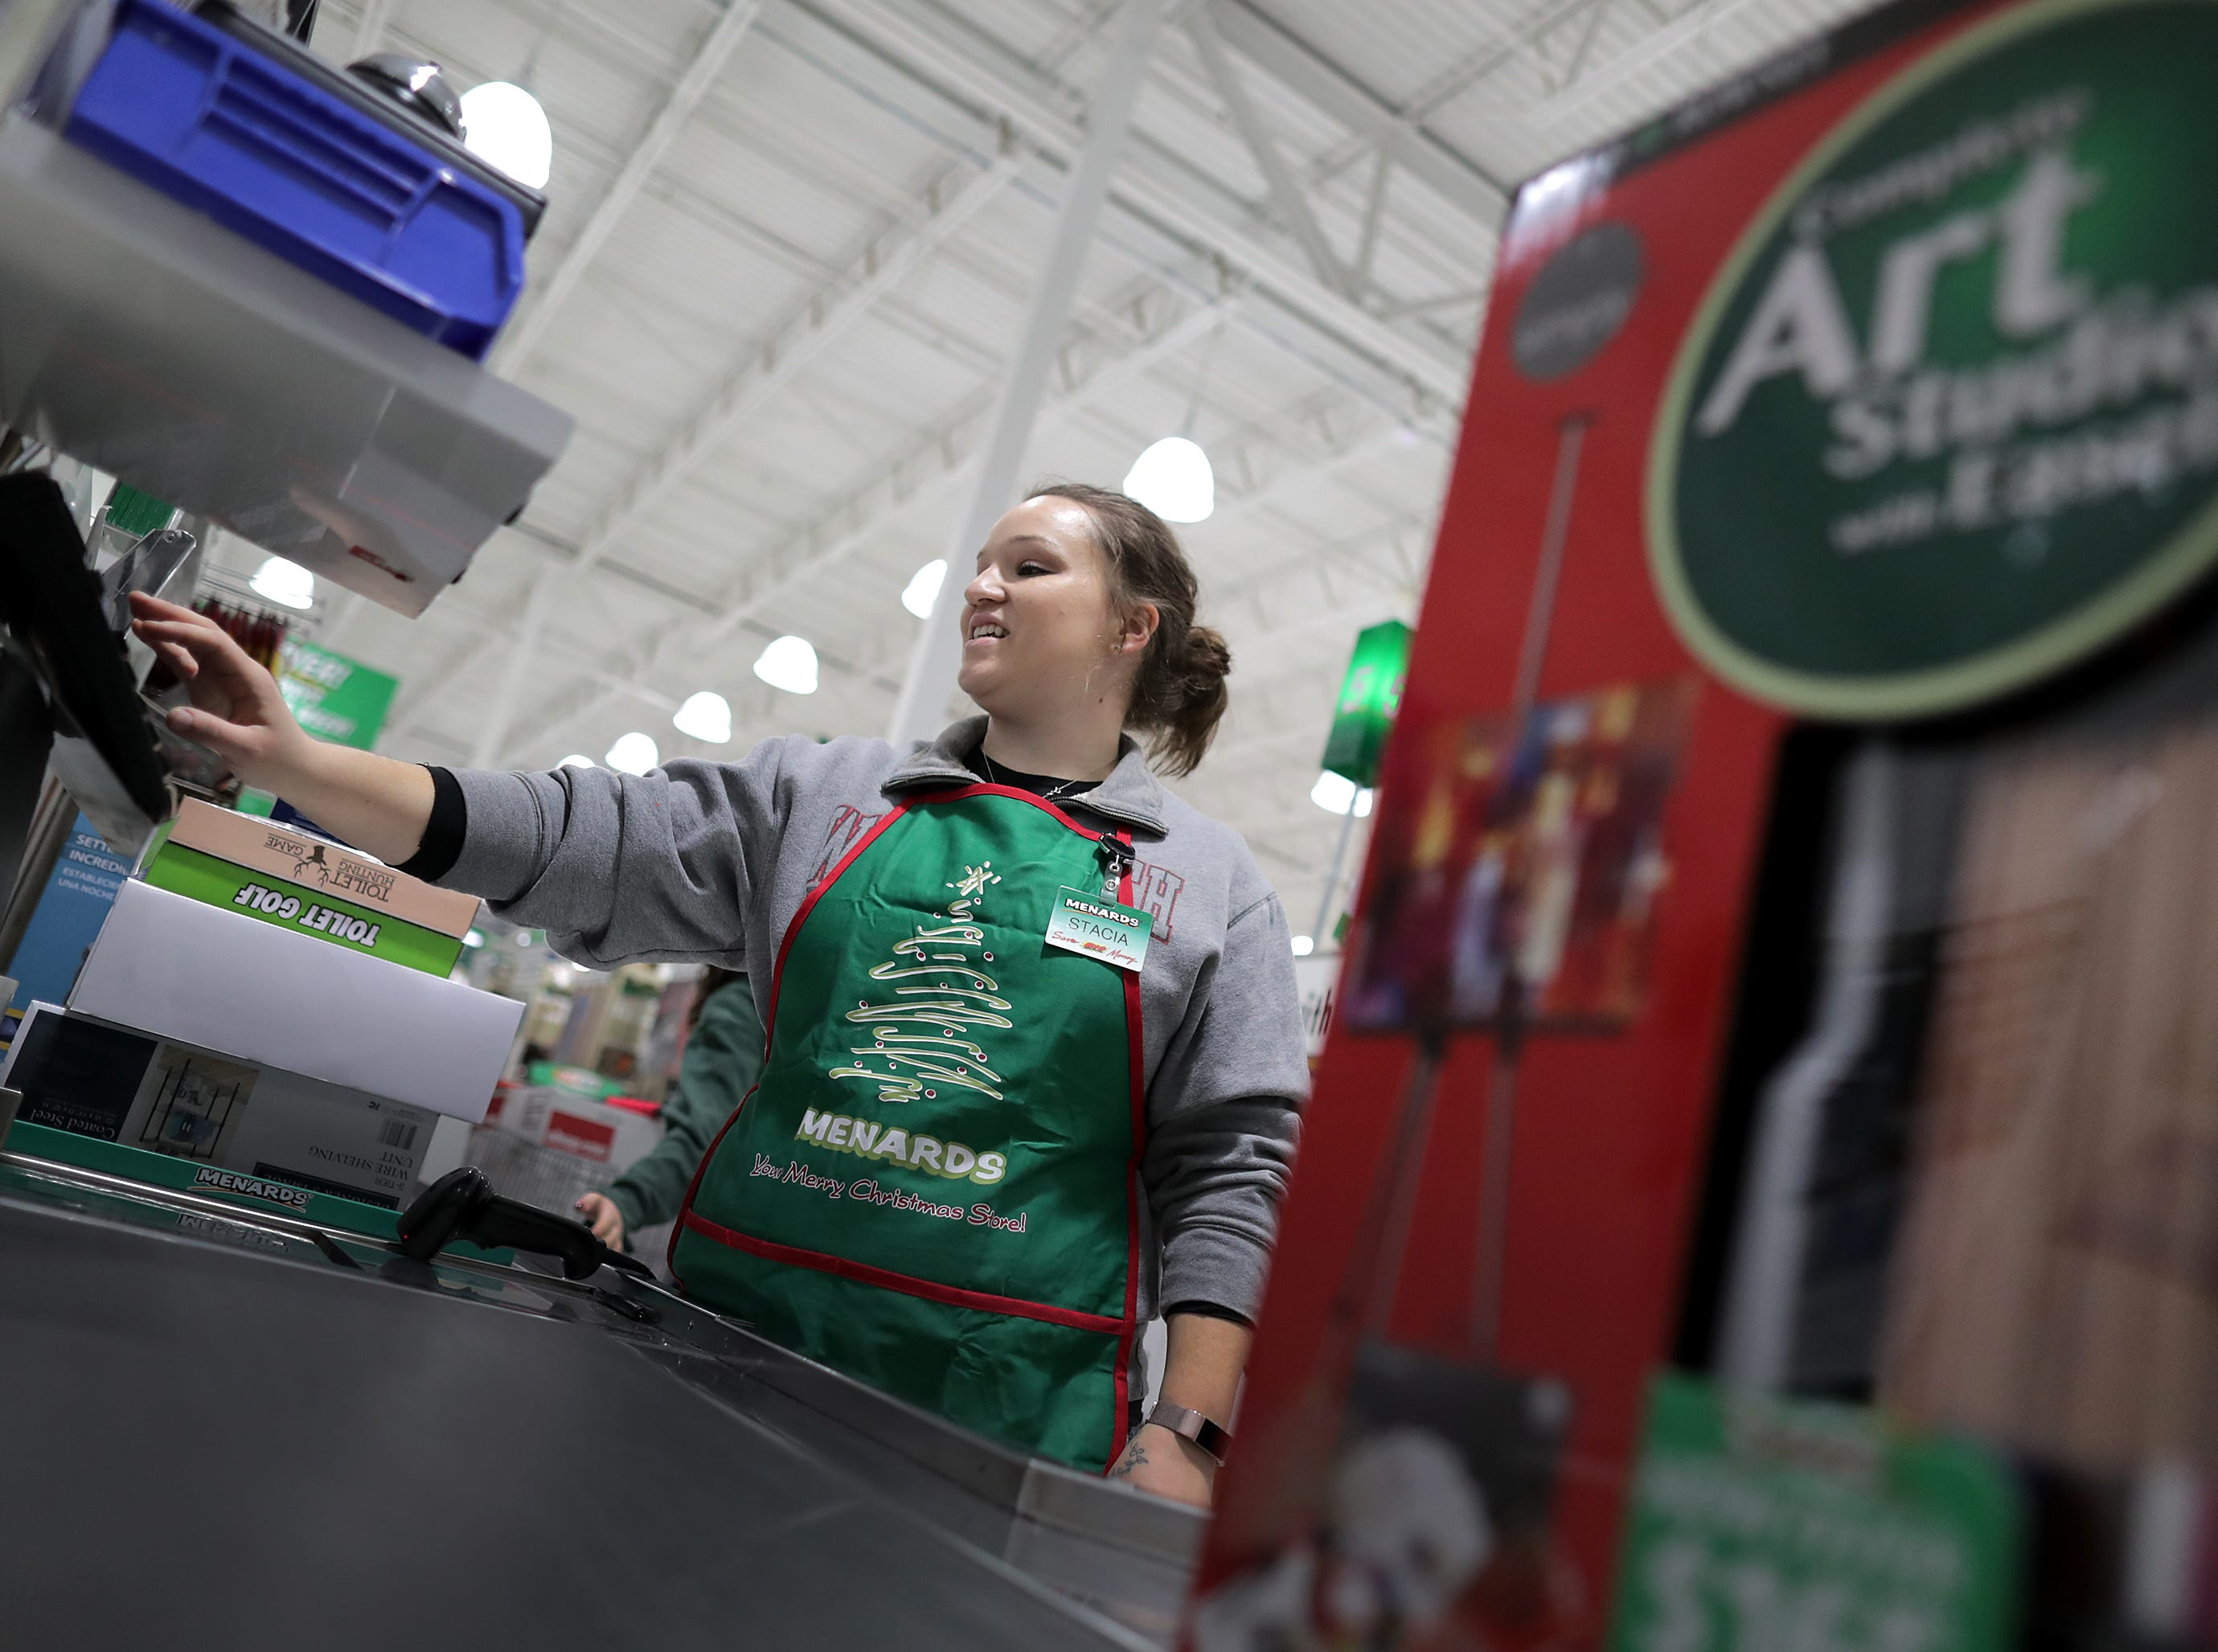 Stacia Vander Wielen works on a cash register during Black Friday at Menards on Friday, Nov. 23, 2018 in Grand Chute, Wis